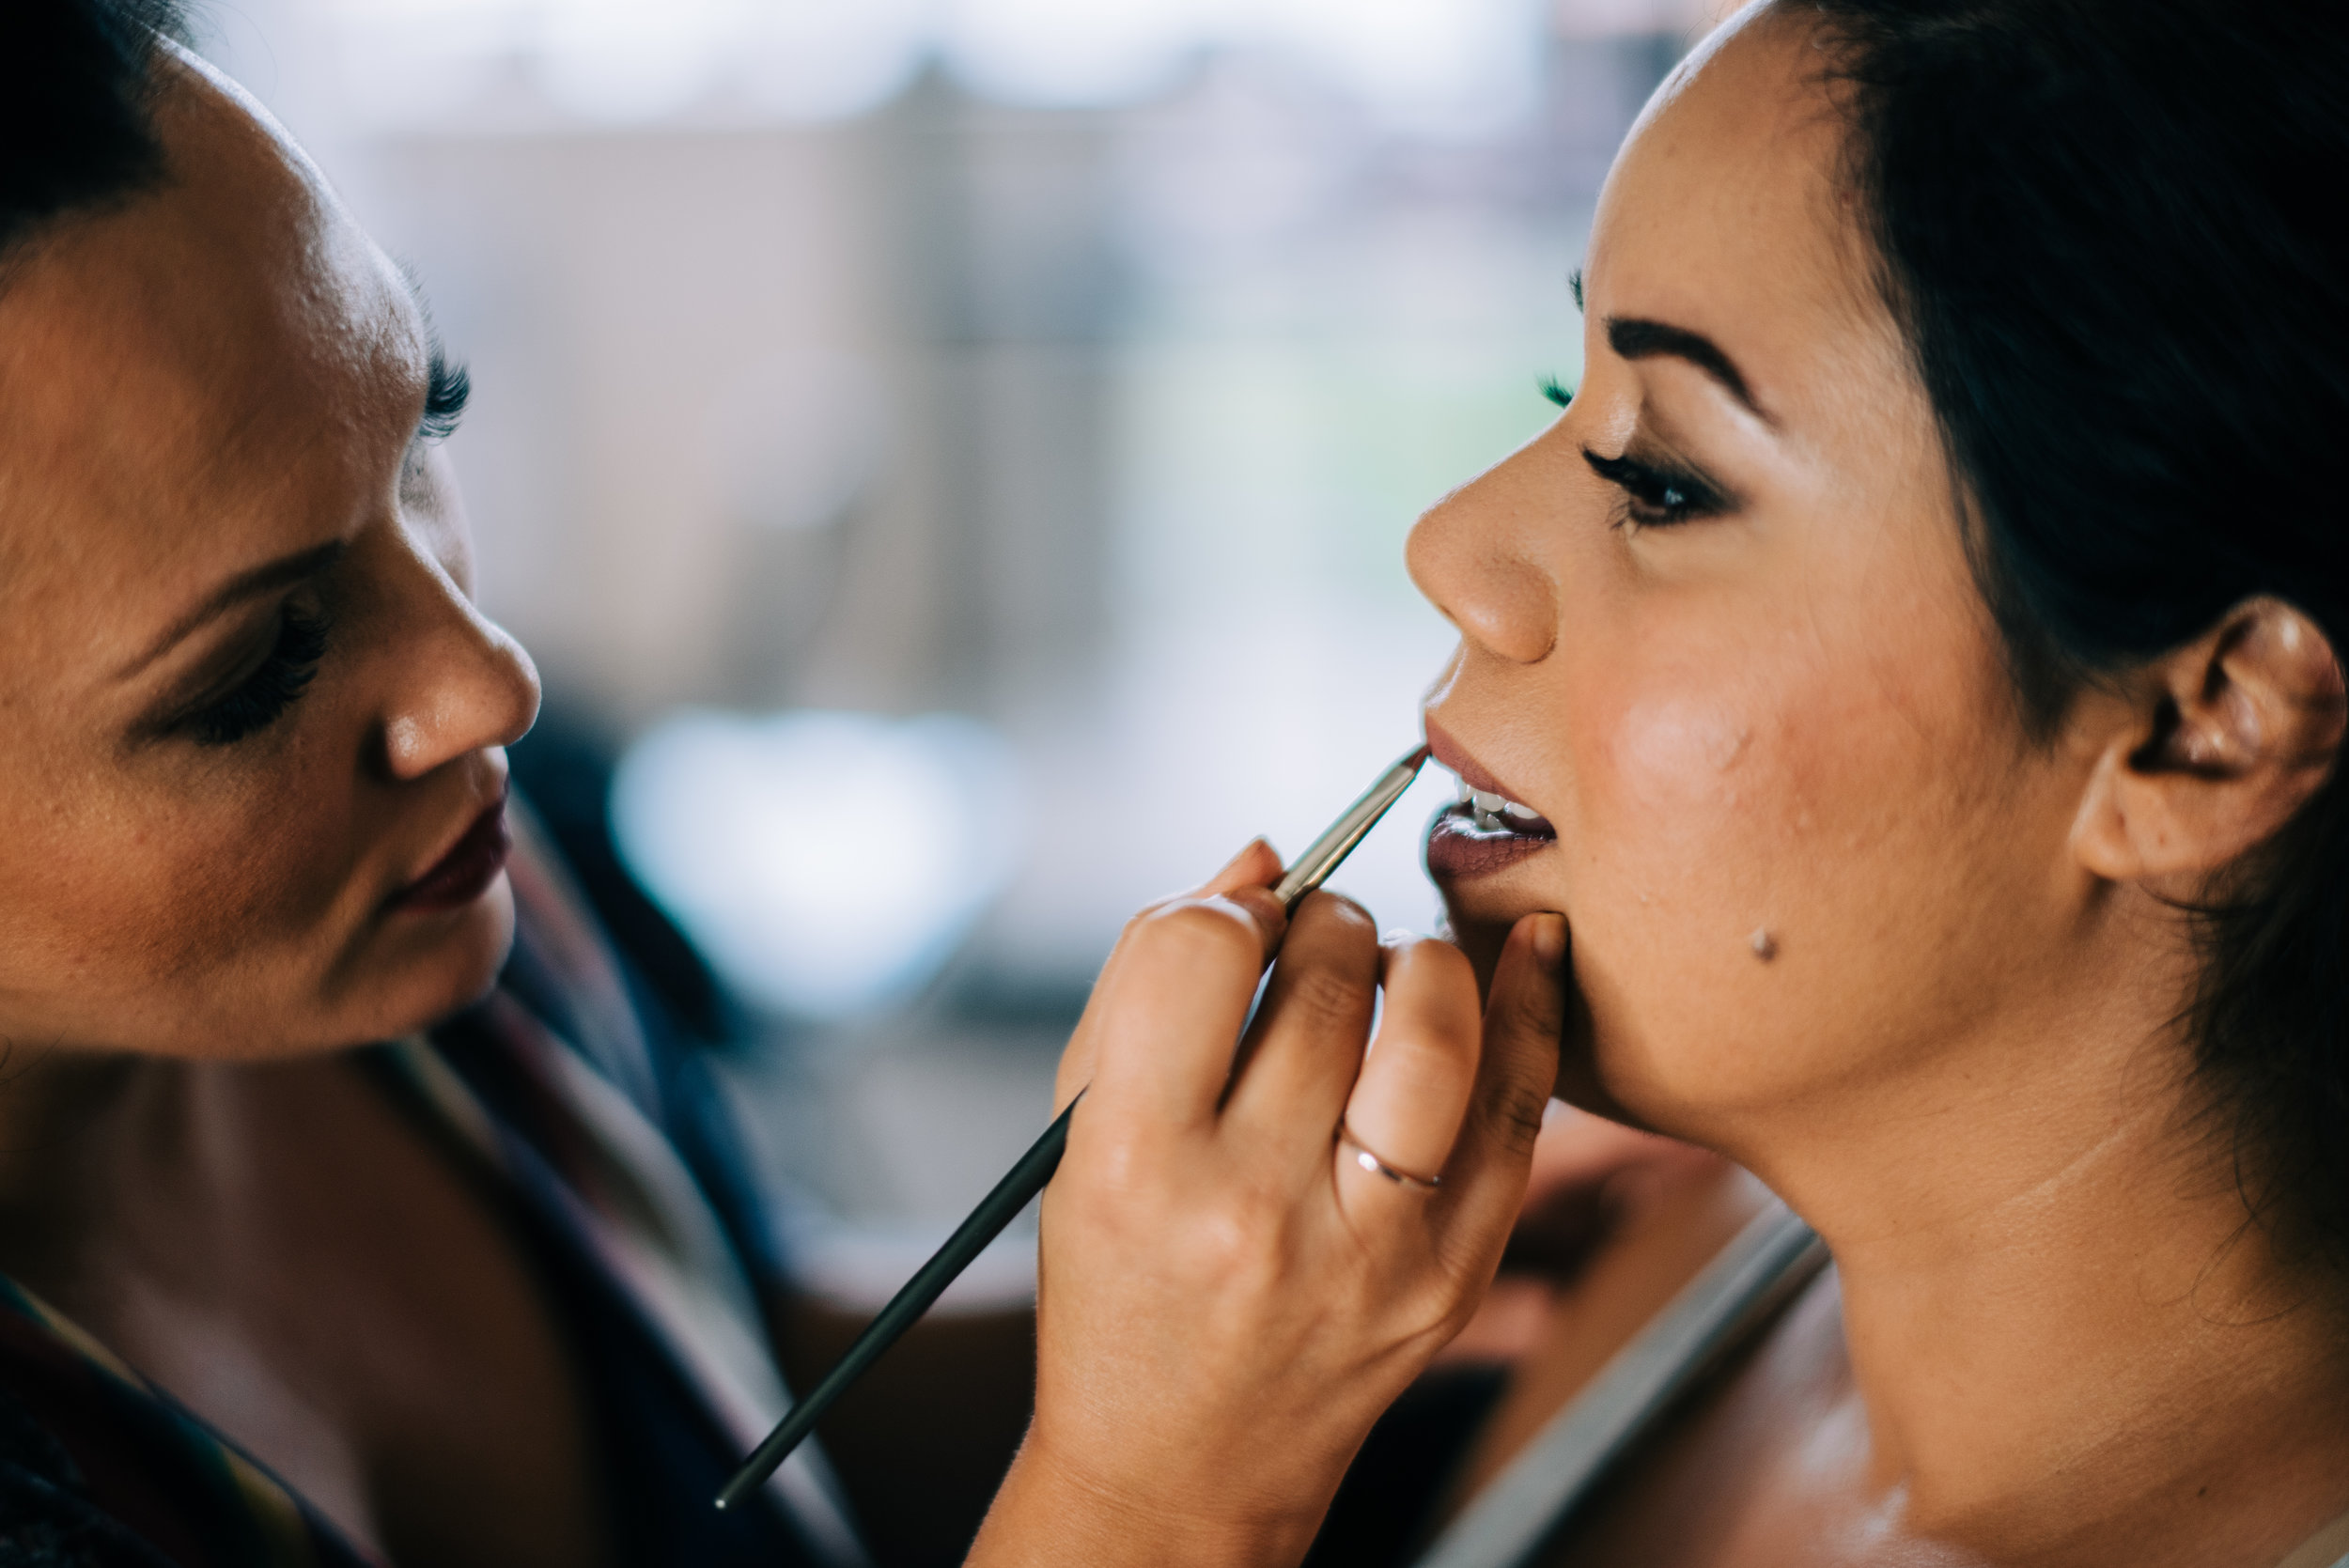 4 bride makeup bride lipstick before ceremony wedding makeup artist Life Design Events photos by Josh Snyder Photography.jpg